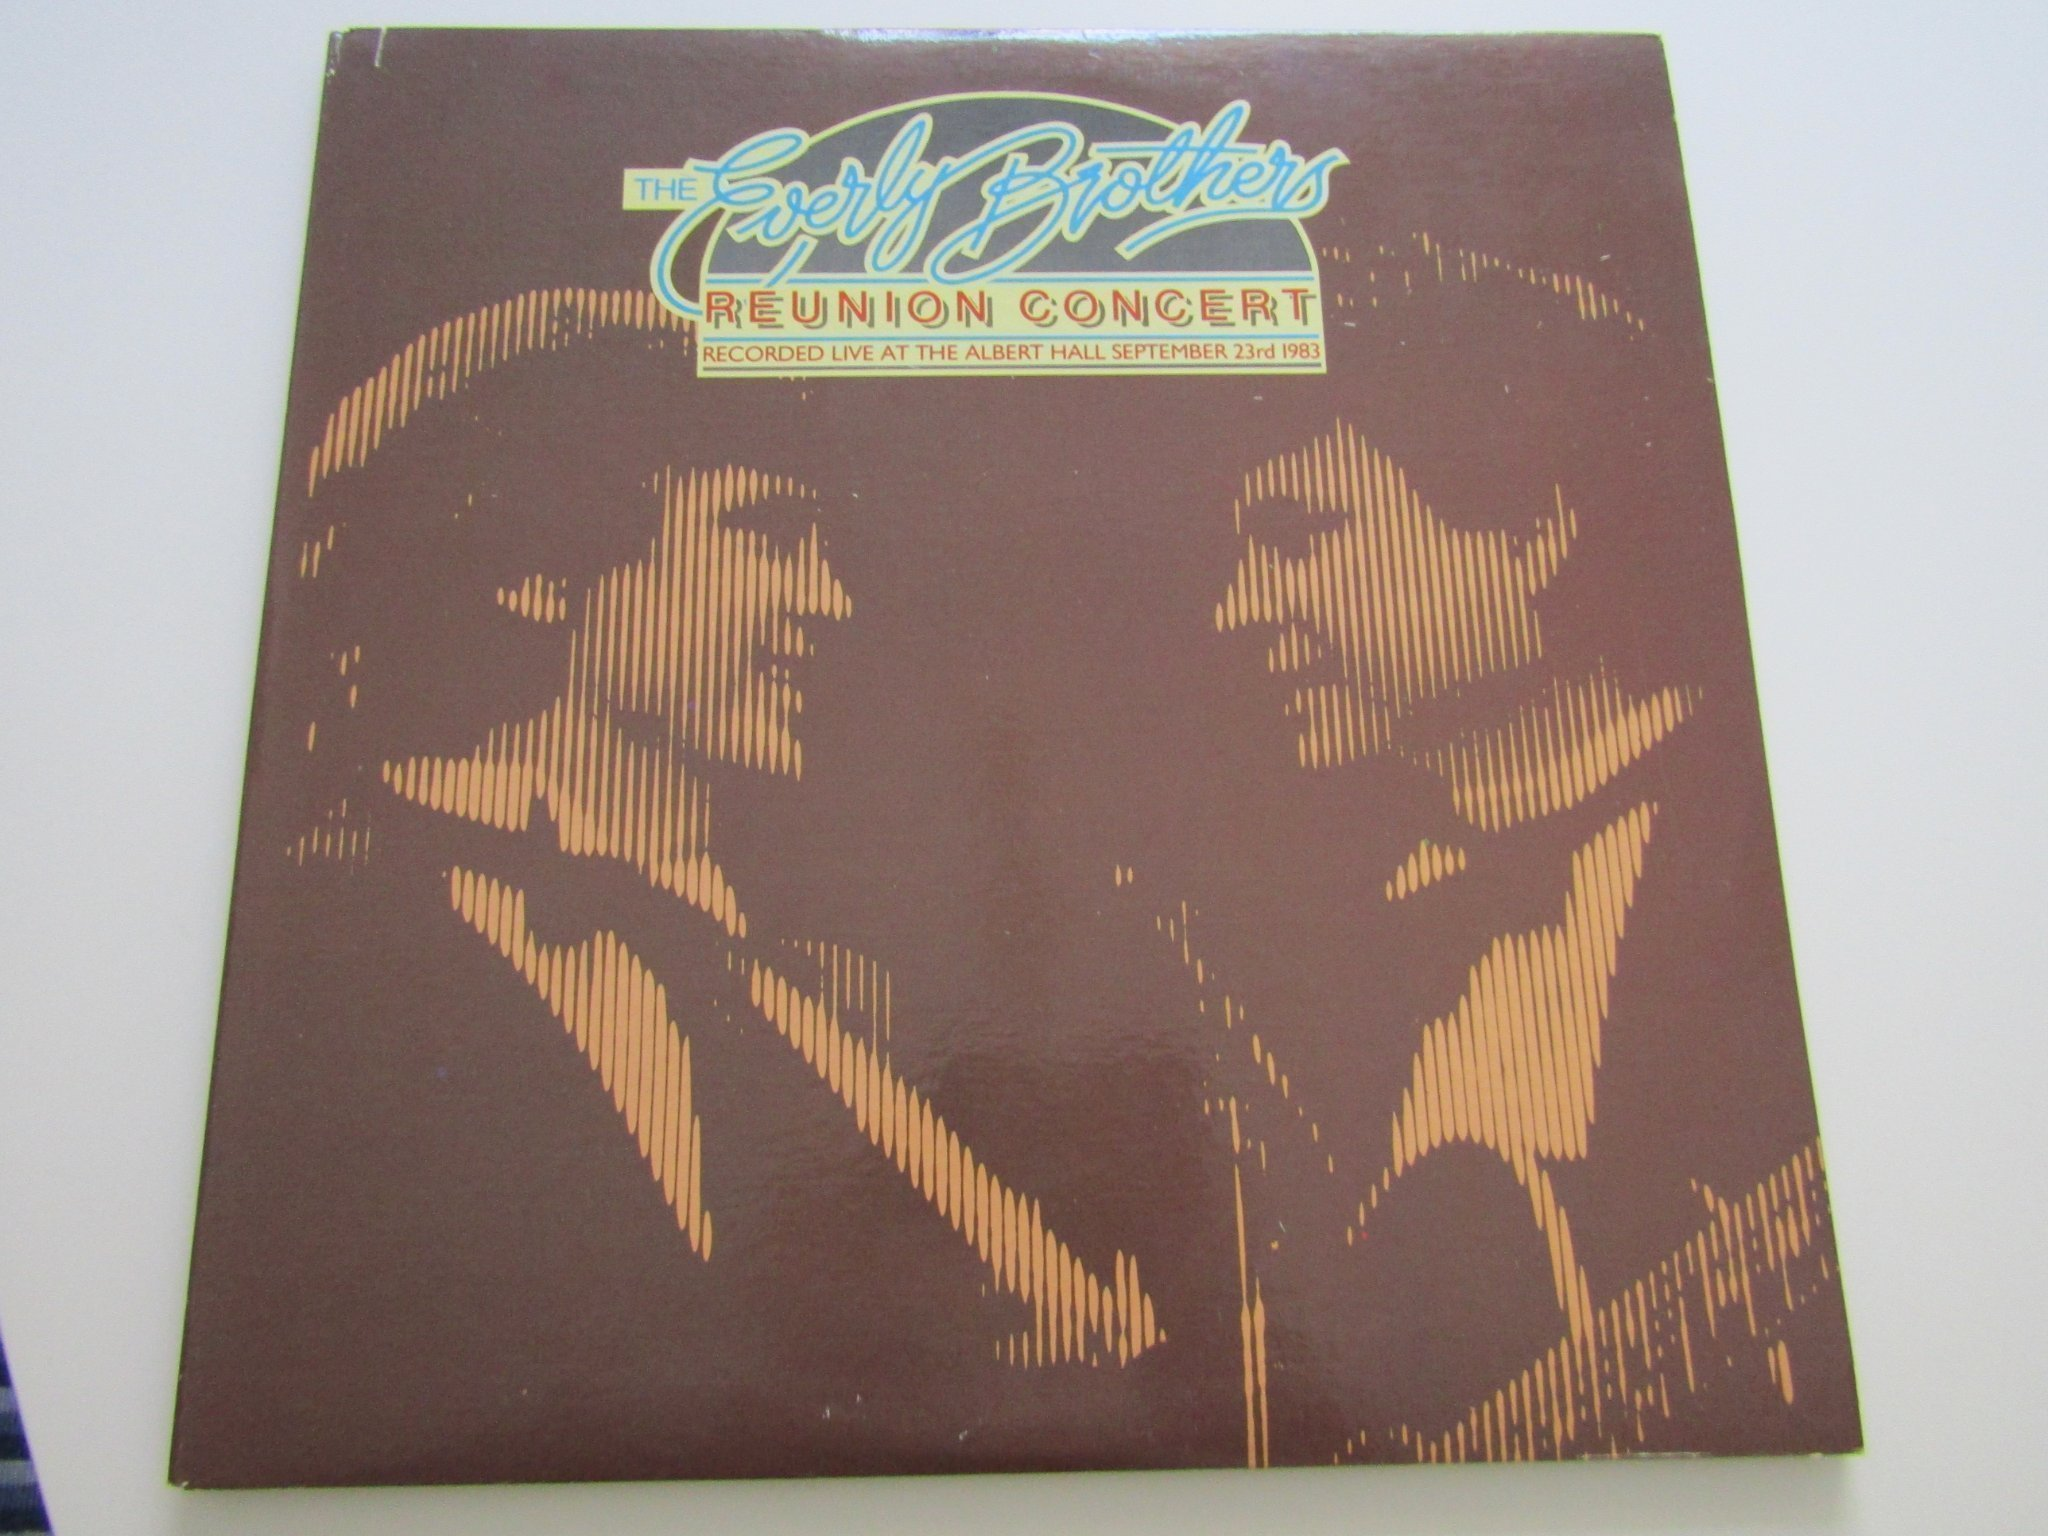 The Everly Brothers vinyl Reunion Concert.  2 LP. Passport Records PB 11001.